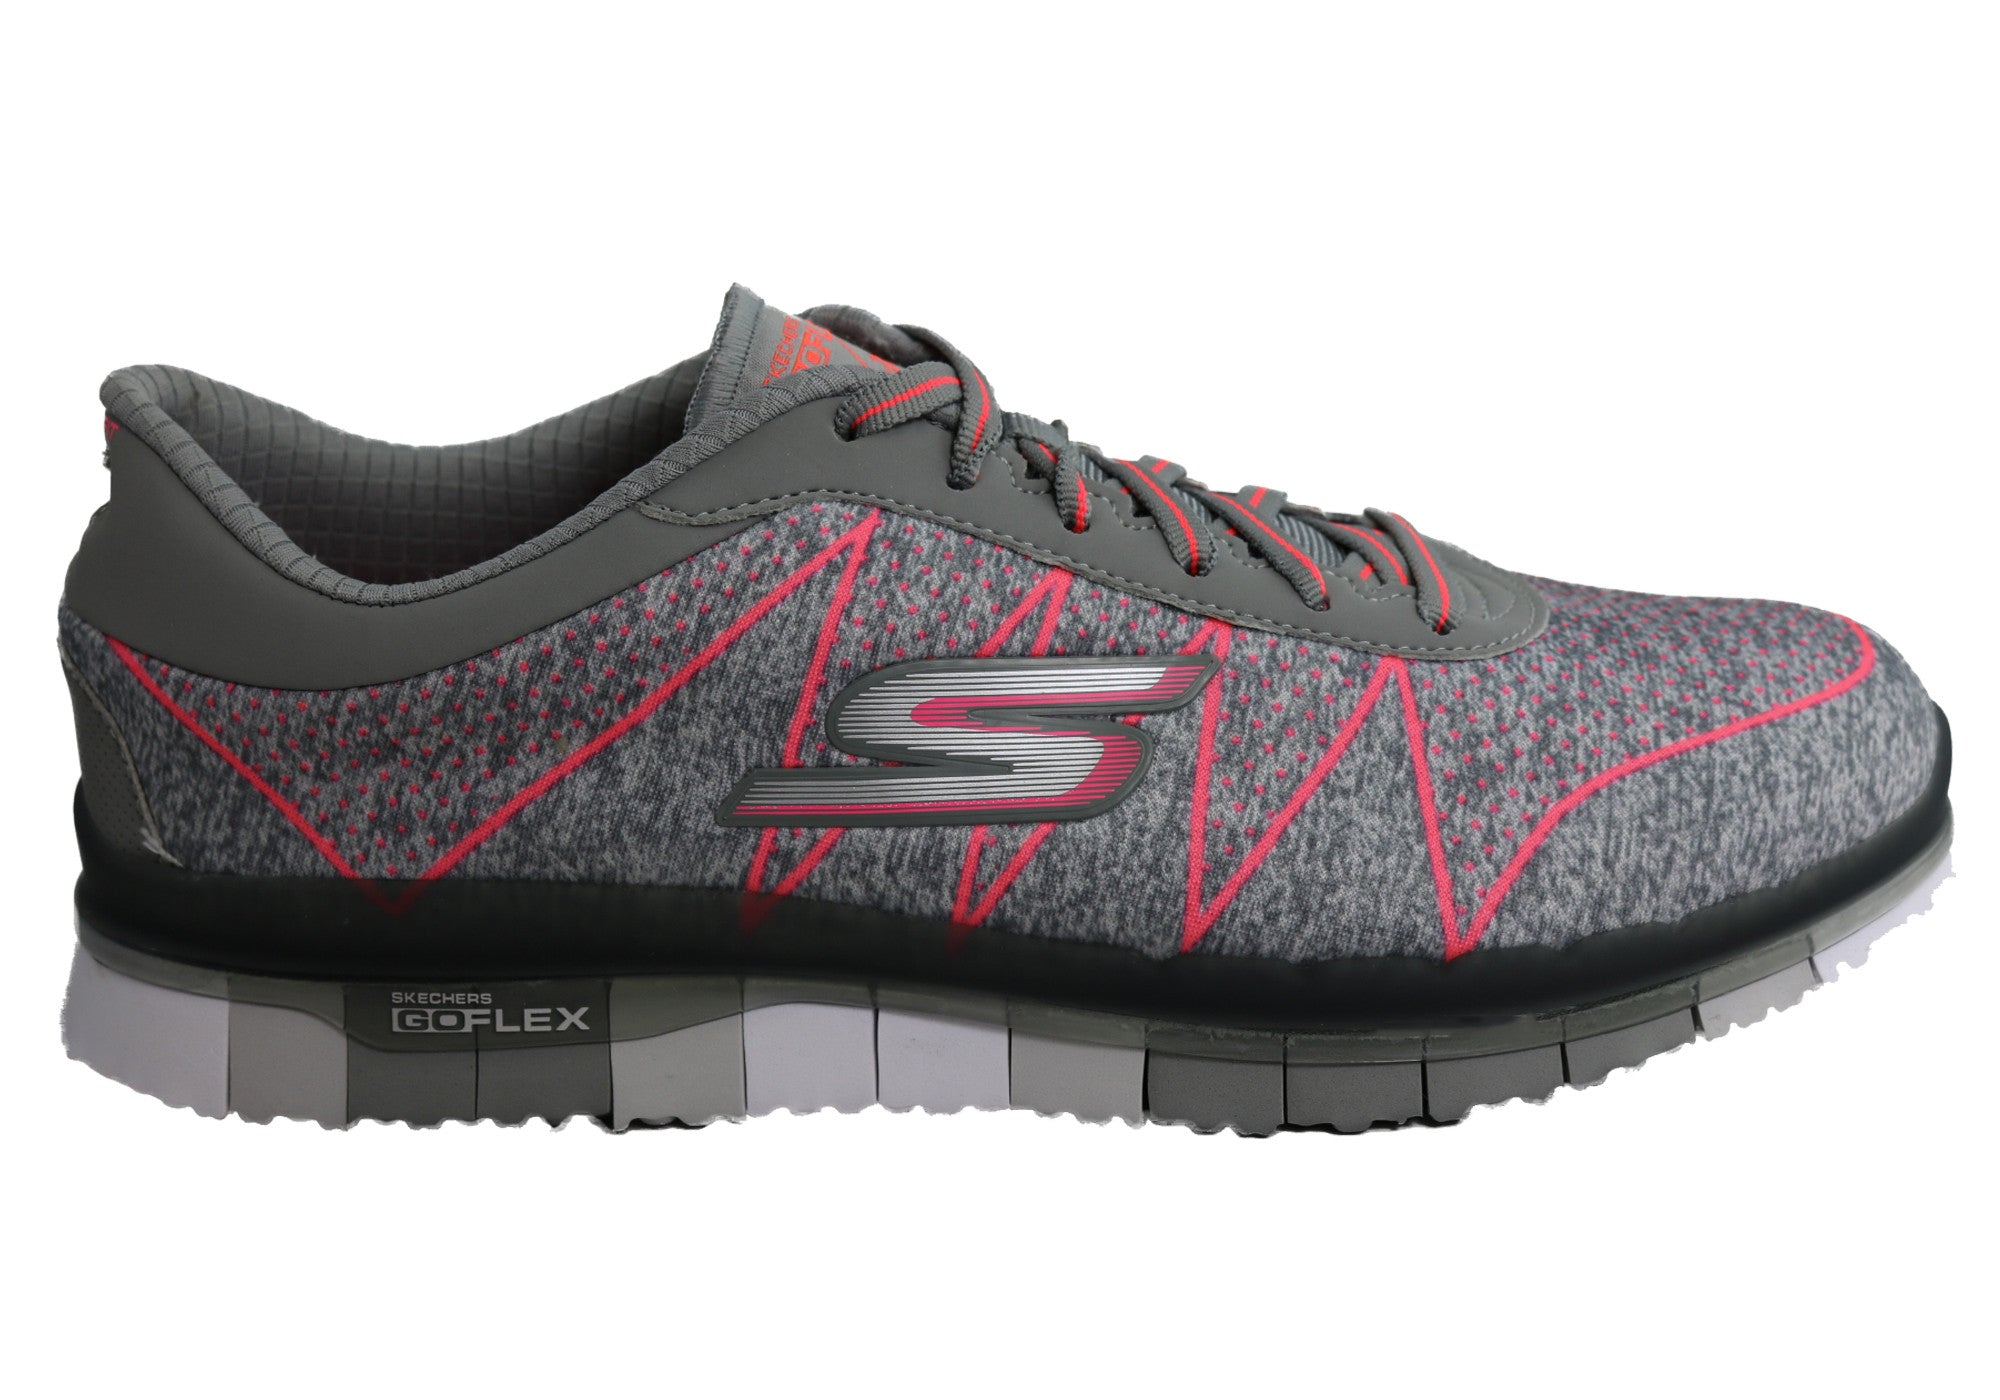 2676b6009ce8 Home Skechers Womens Go Flex Ability Lace Up Cushioned Sneakers. Gray  ...